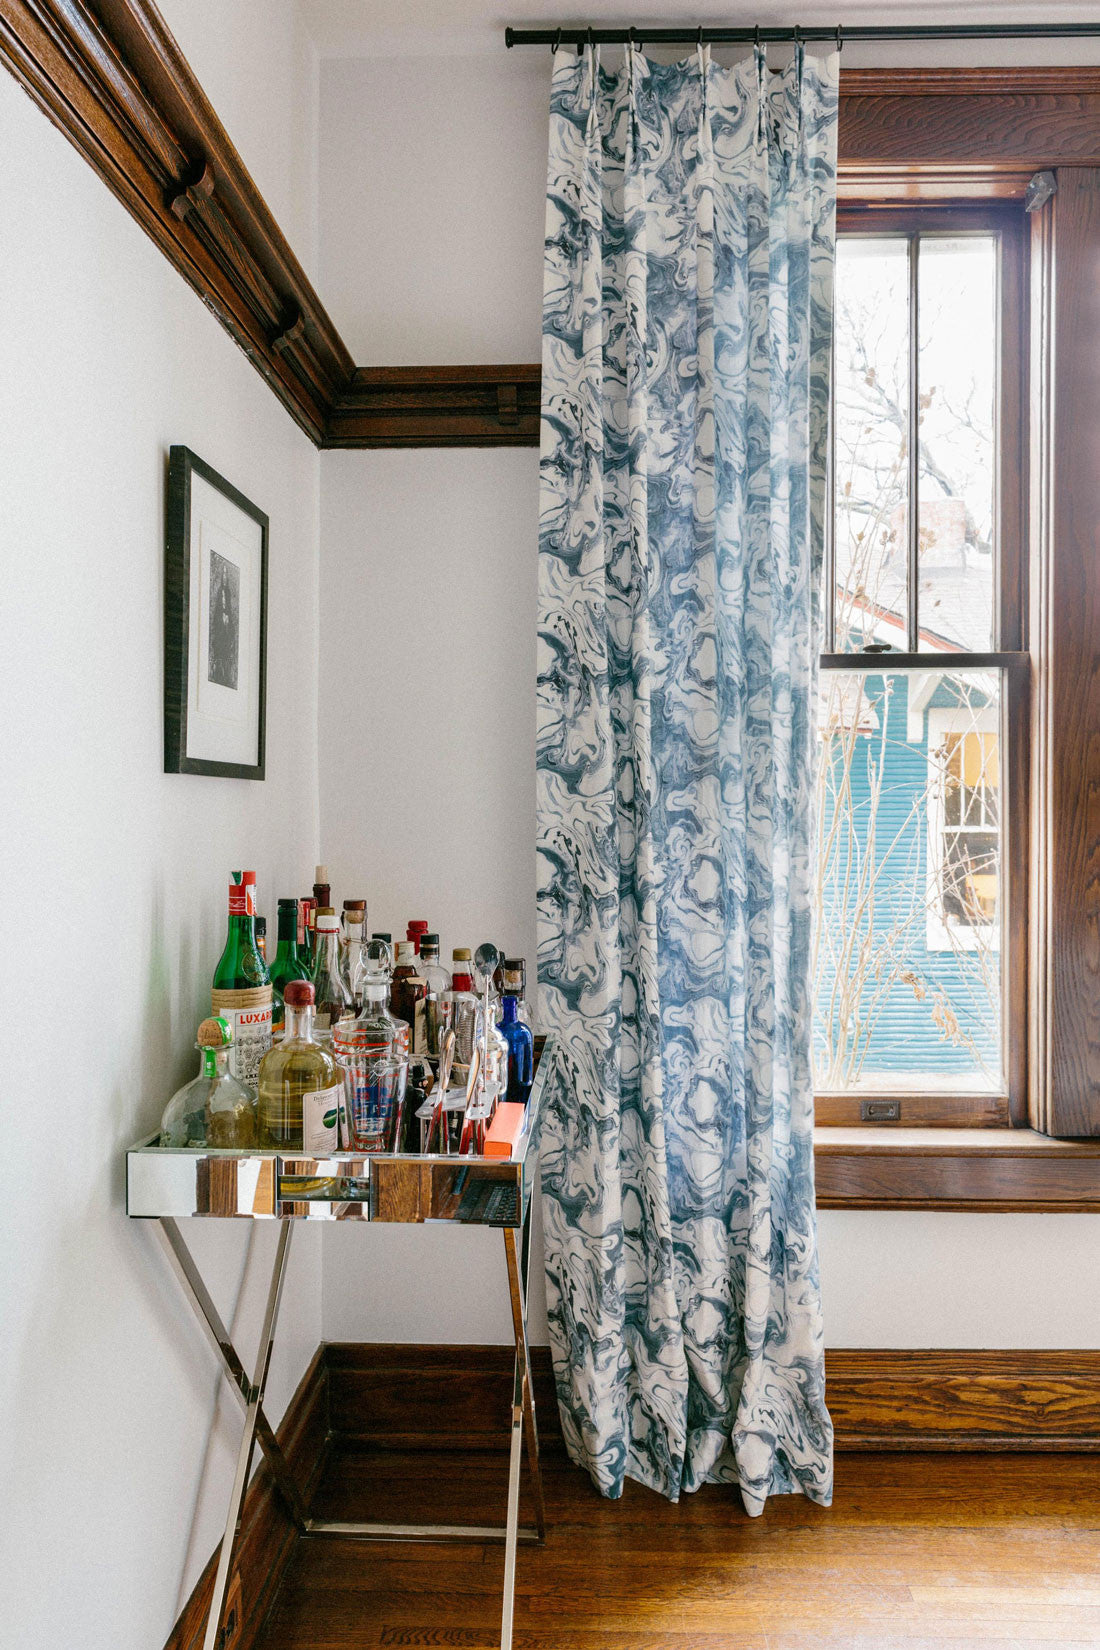 The Drapes Are In A 100 Year Old Home With Very Dark Moldings And Victorian  Architecture. The Drapes Give It A Bit Of Modern Whimsy That I Really Loved.